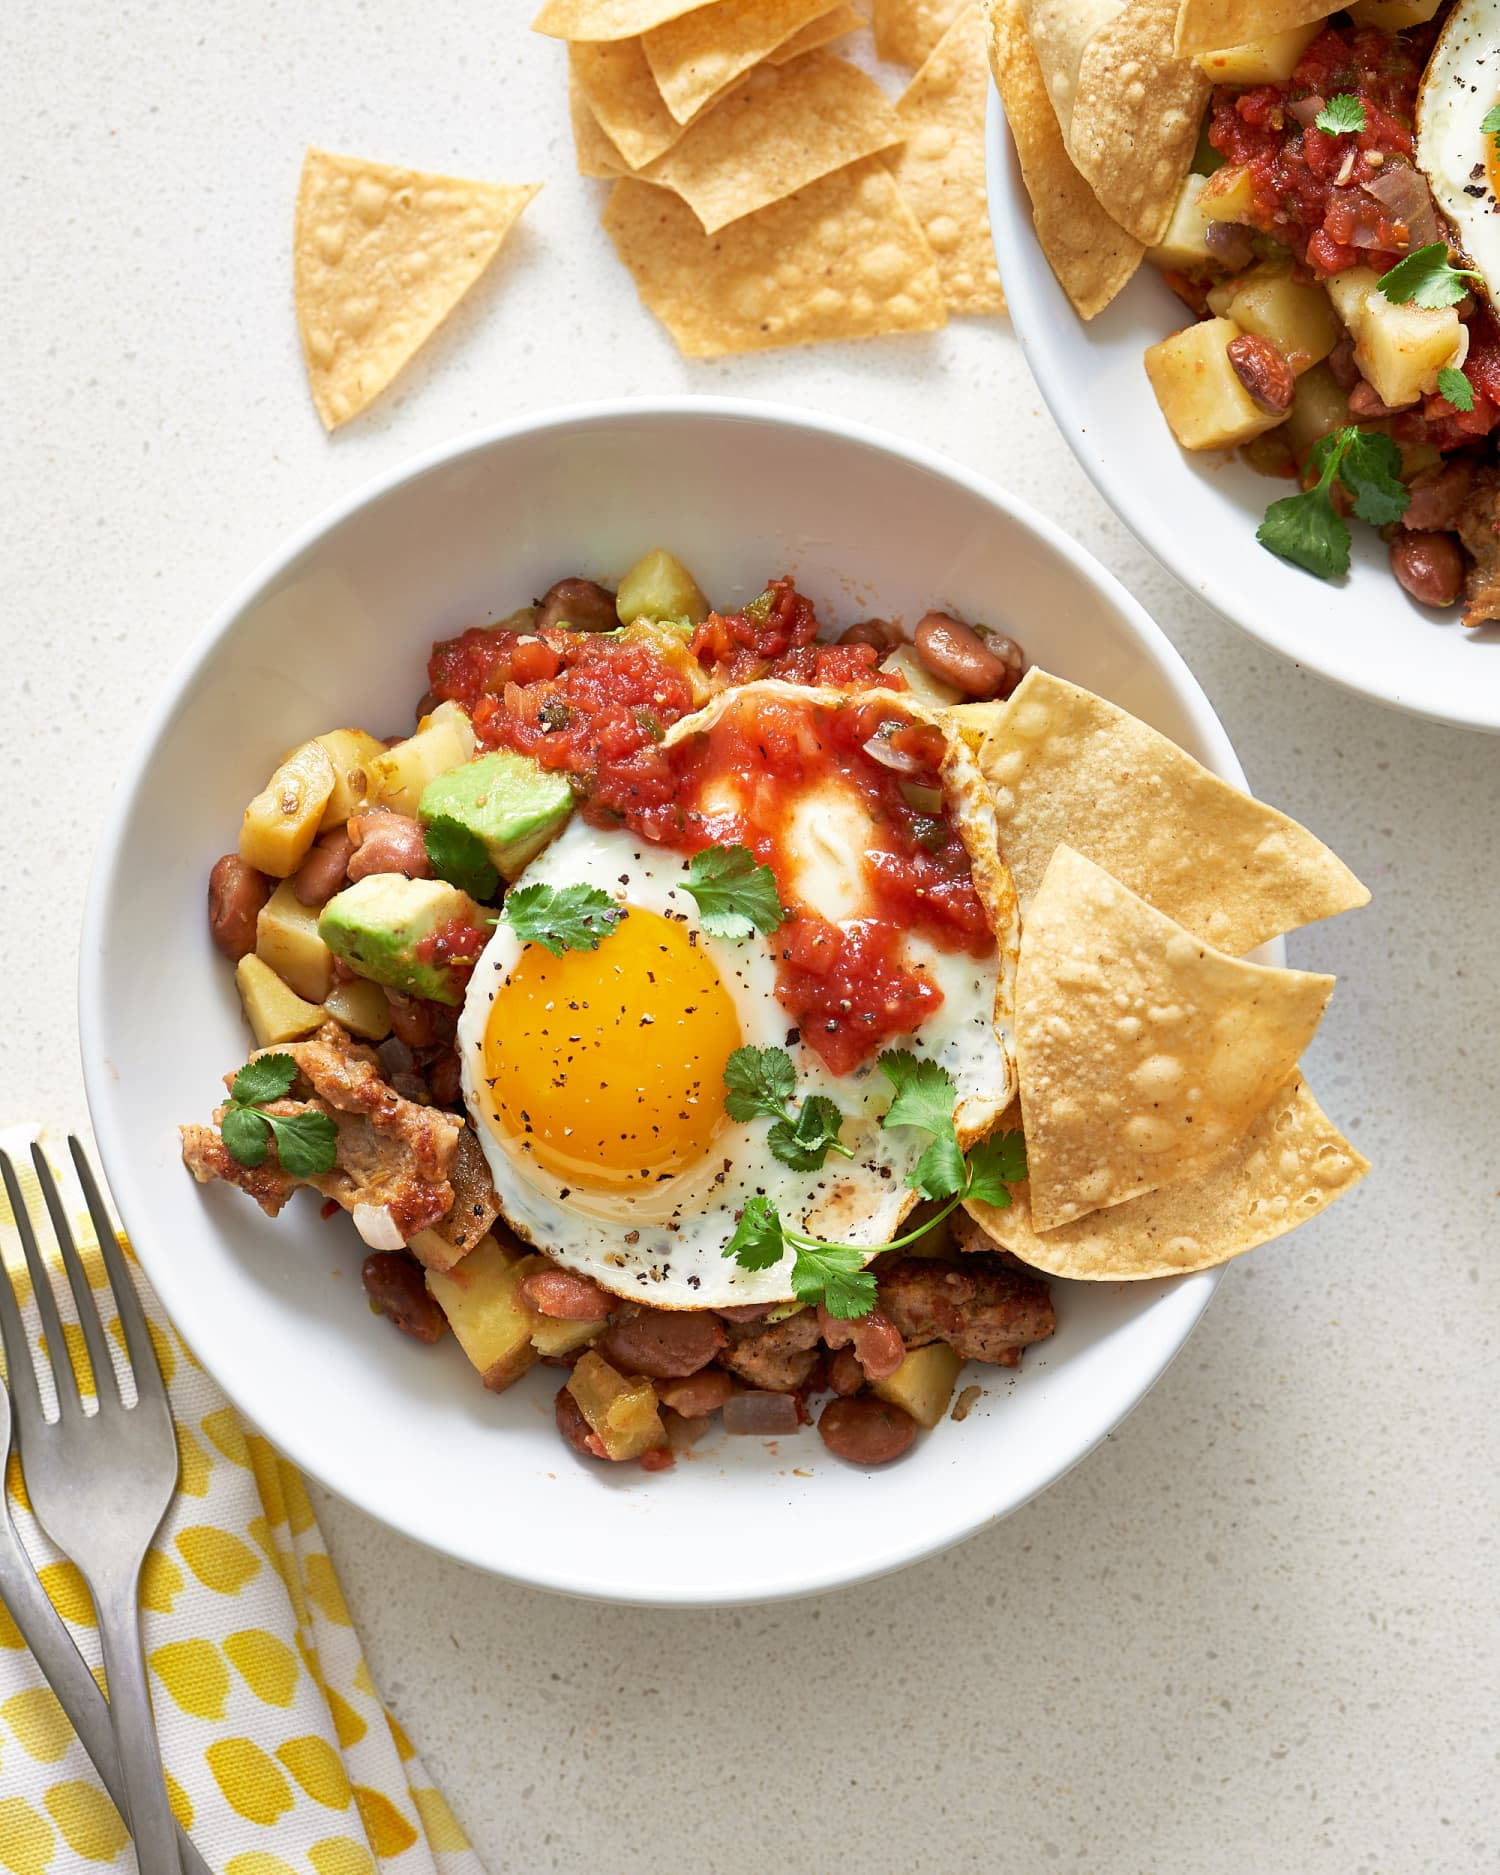 How To Make Slow Cooker Breakfast Burrito Bowls